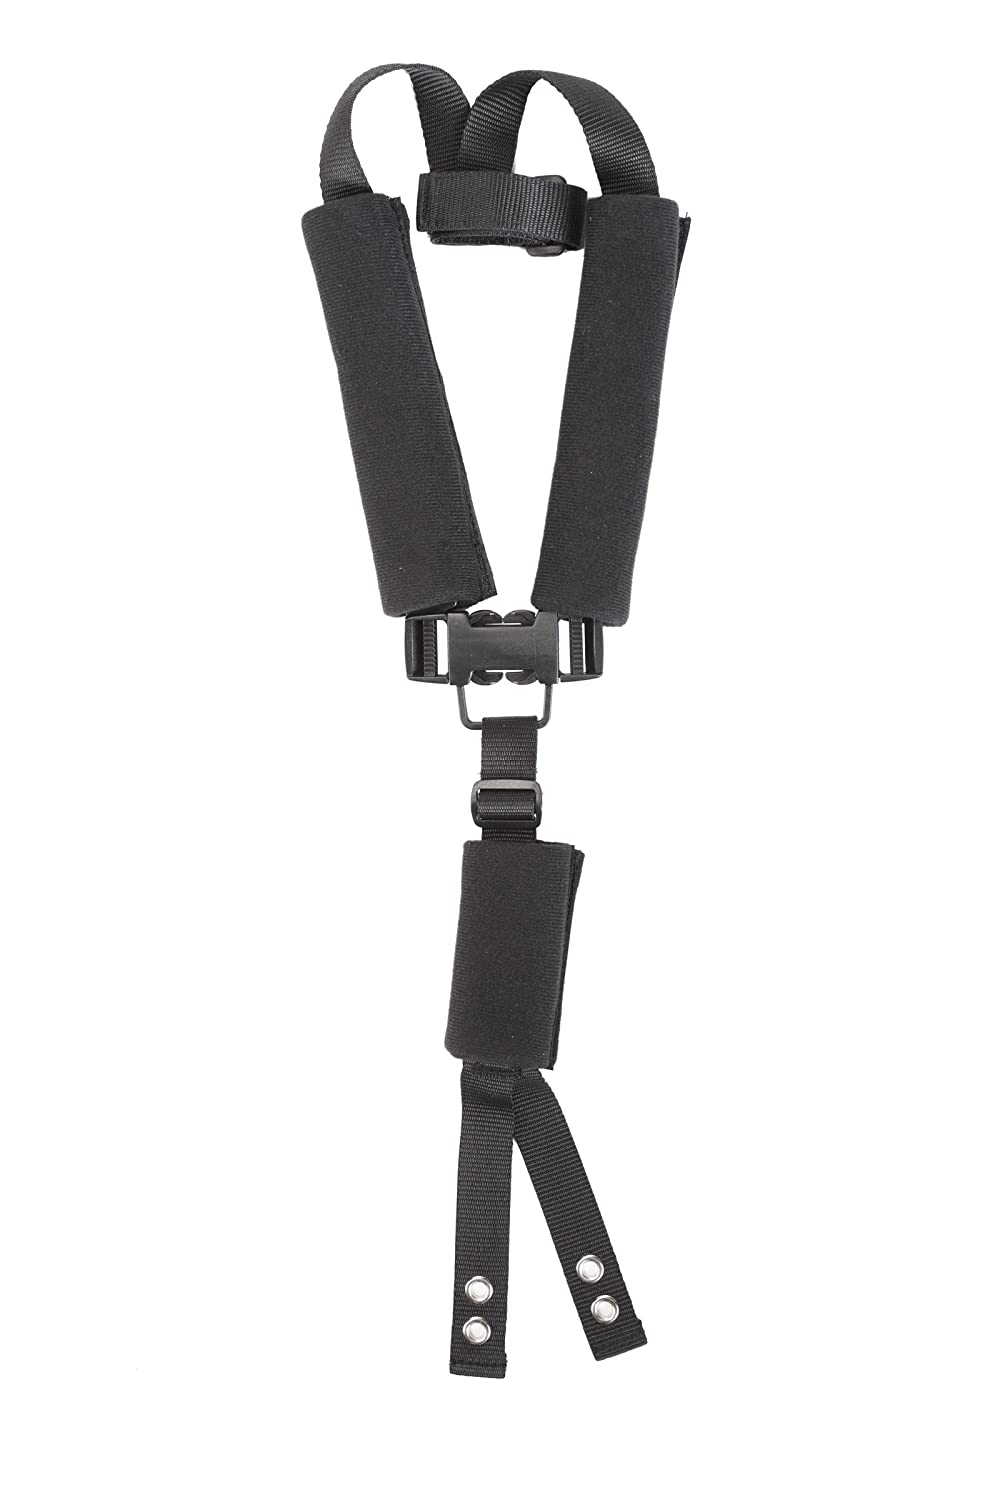 Mobo Cruiser Seat Belt for Mini MBCSB-601 by Mobo Cruiser